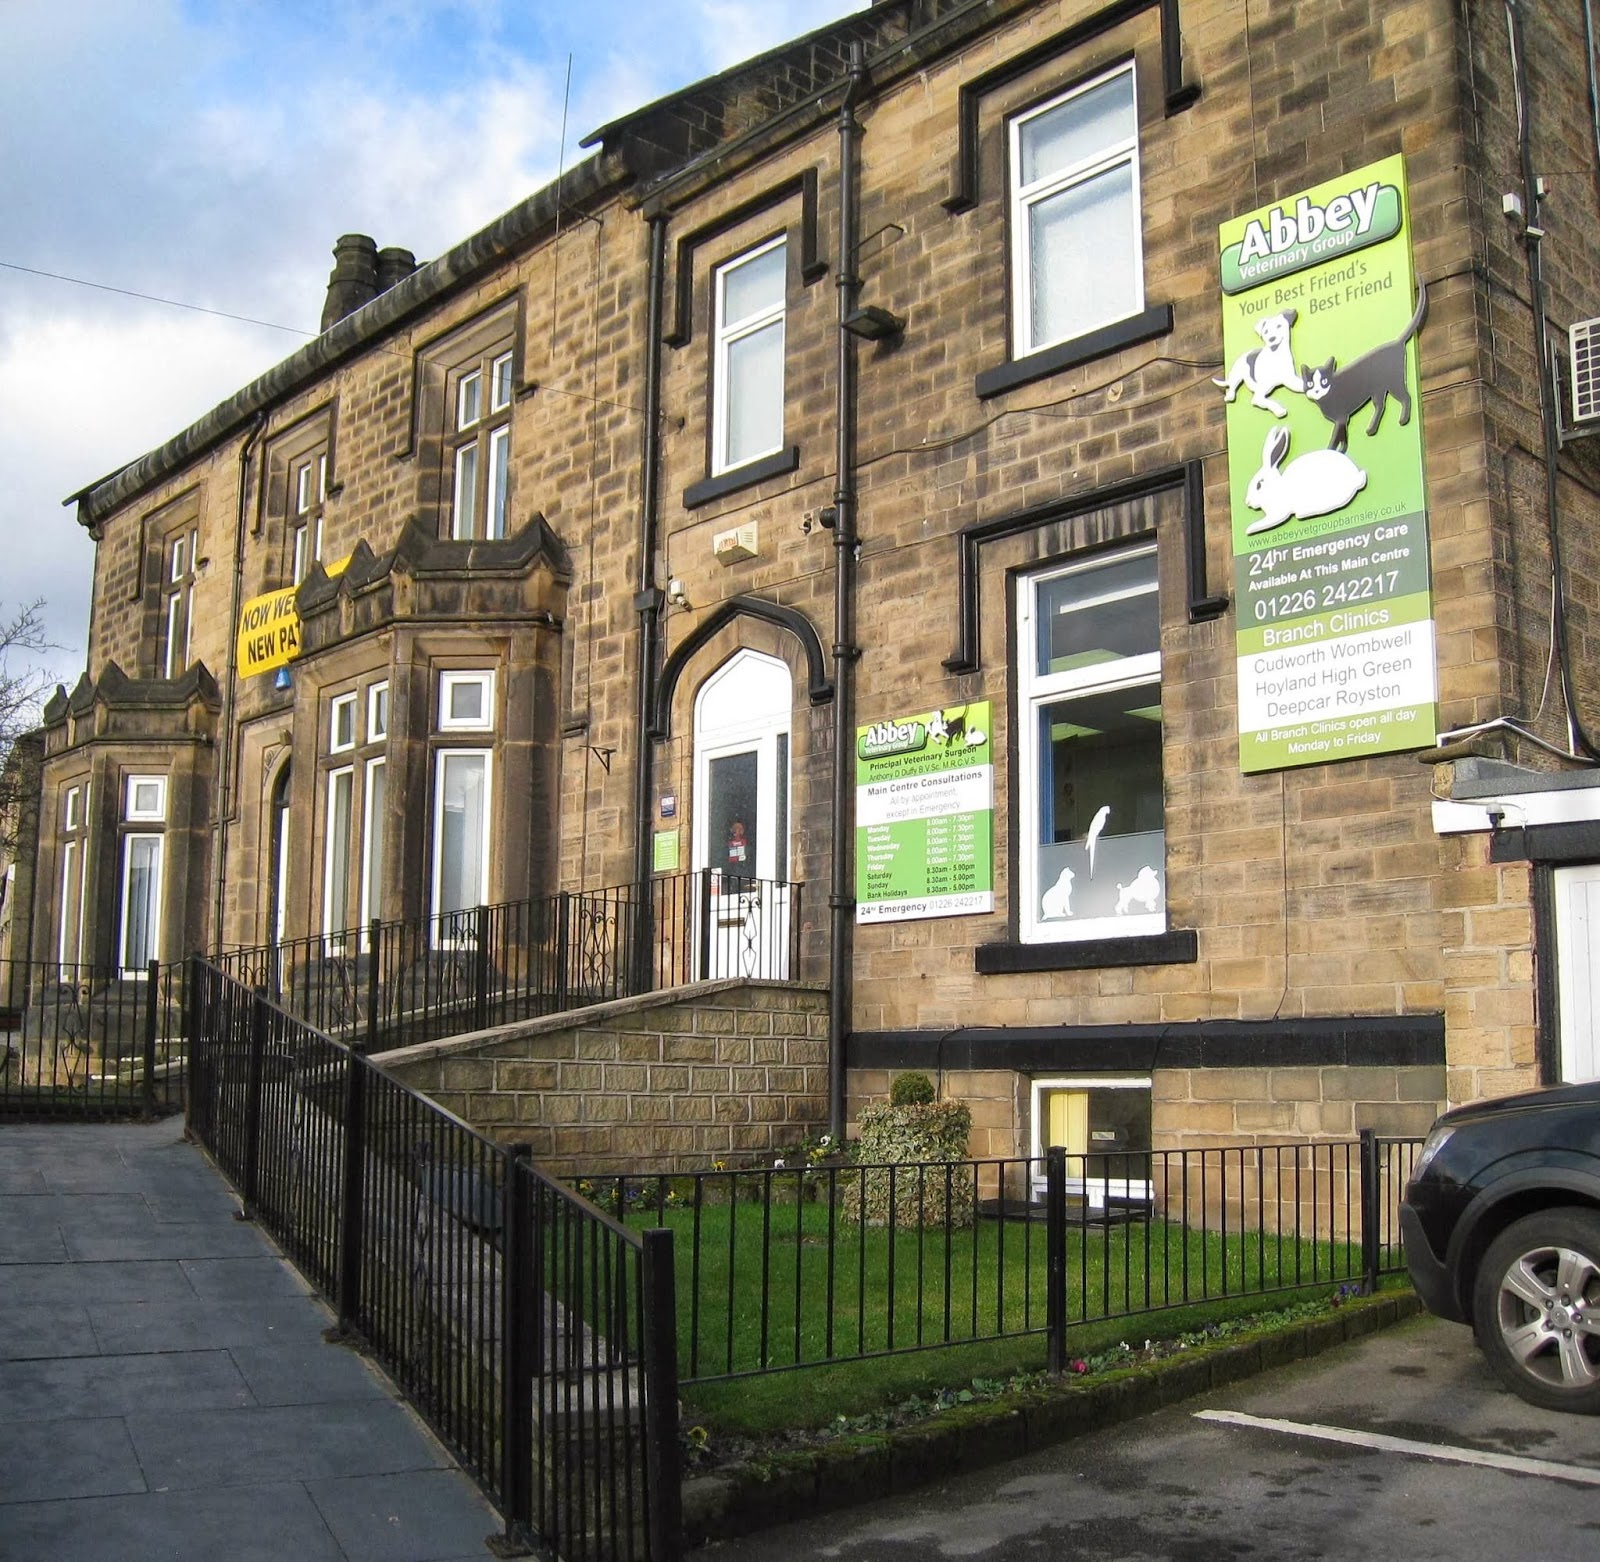 abbey veterinary group, 89 dodworth road, barnsley, reviews and